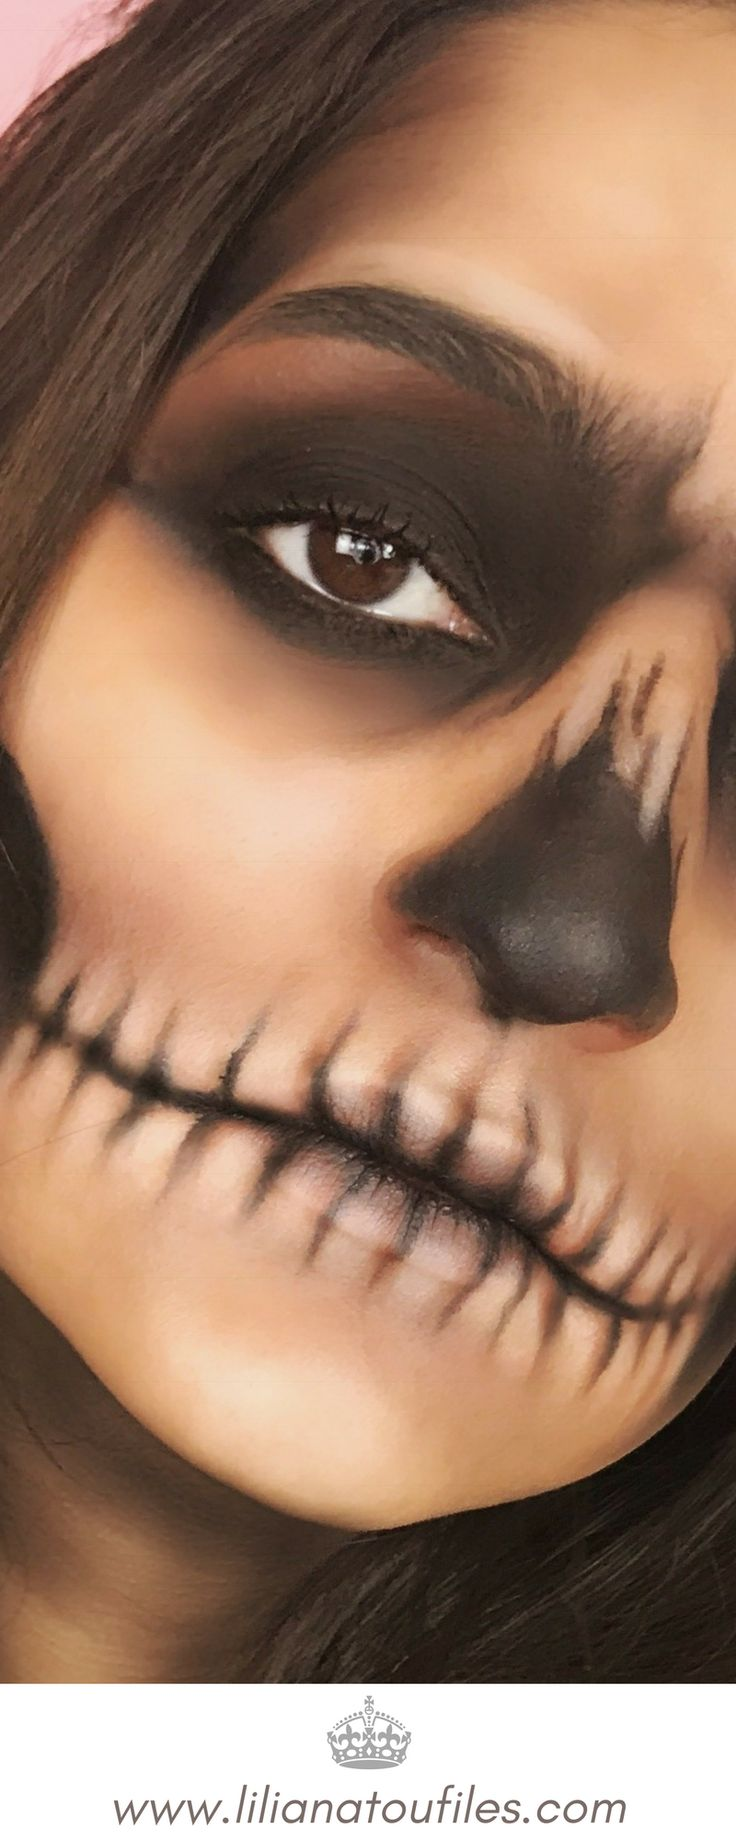 Halloween is almost upon on! Kick start your Halloween party with this How To: Easy Halloween Skull Makeup Tutorial you can recreate using your everyday makeup products. Super Easy, Super inexpensive! You only need eyeshadow and eyeliner!#youtuber #youtubechannel #youtubevideo #youtube #halloween2017 #halloweenmakeup #halloweencostumes #makeupartist #makeup #makeuplook #makeuplovers #beautyblog #beautyblogger #beautytips #beauty #tutoriales #tutorial #howto #scary #lookoftheday